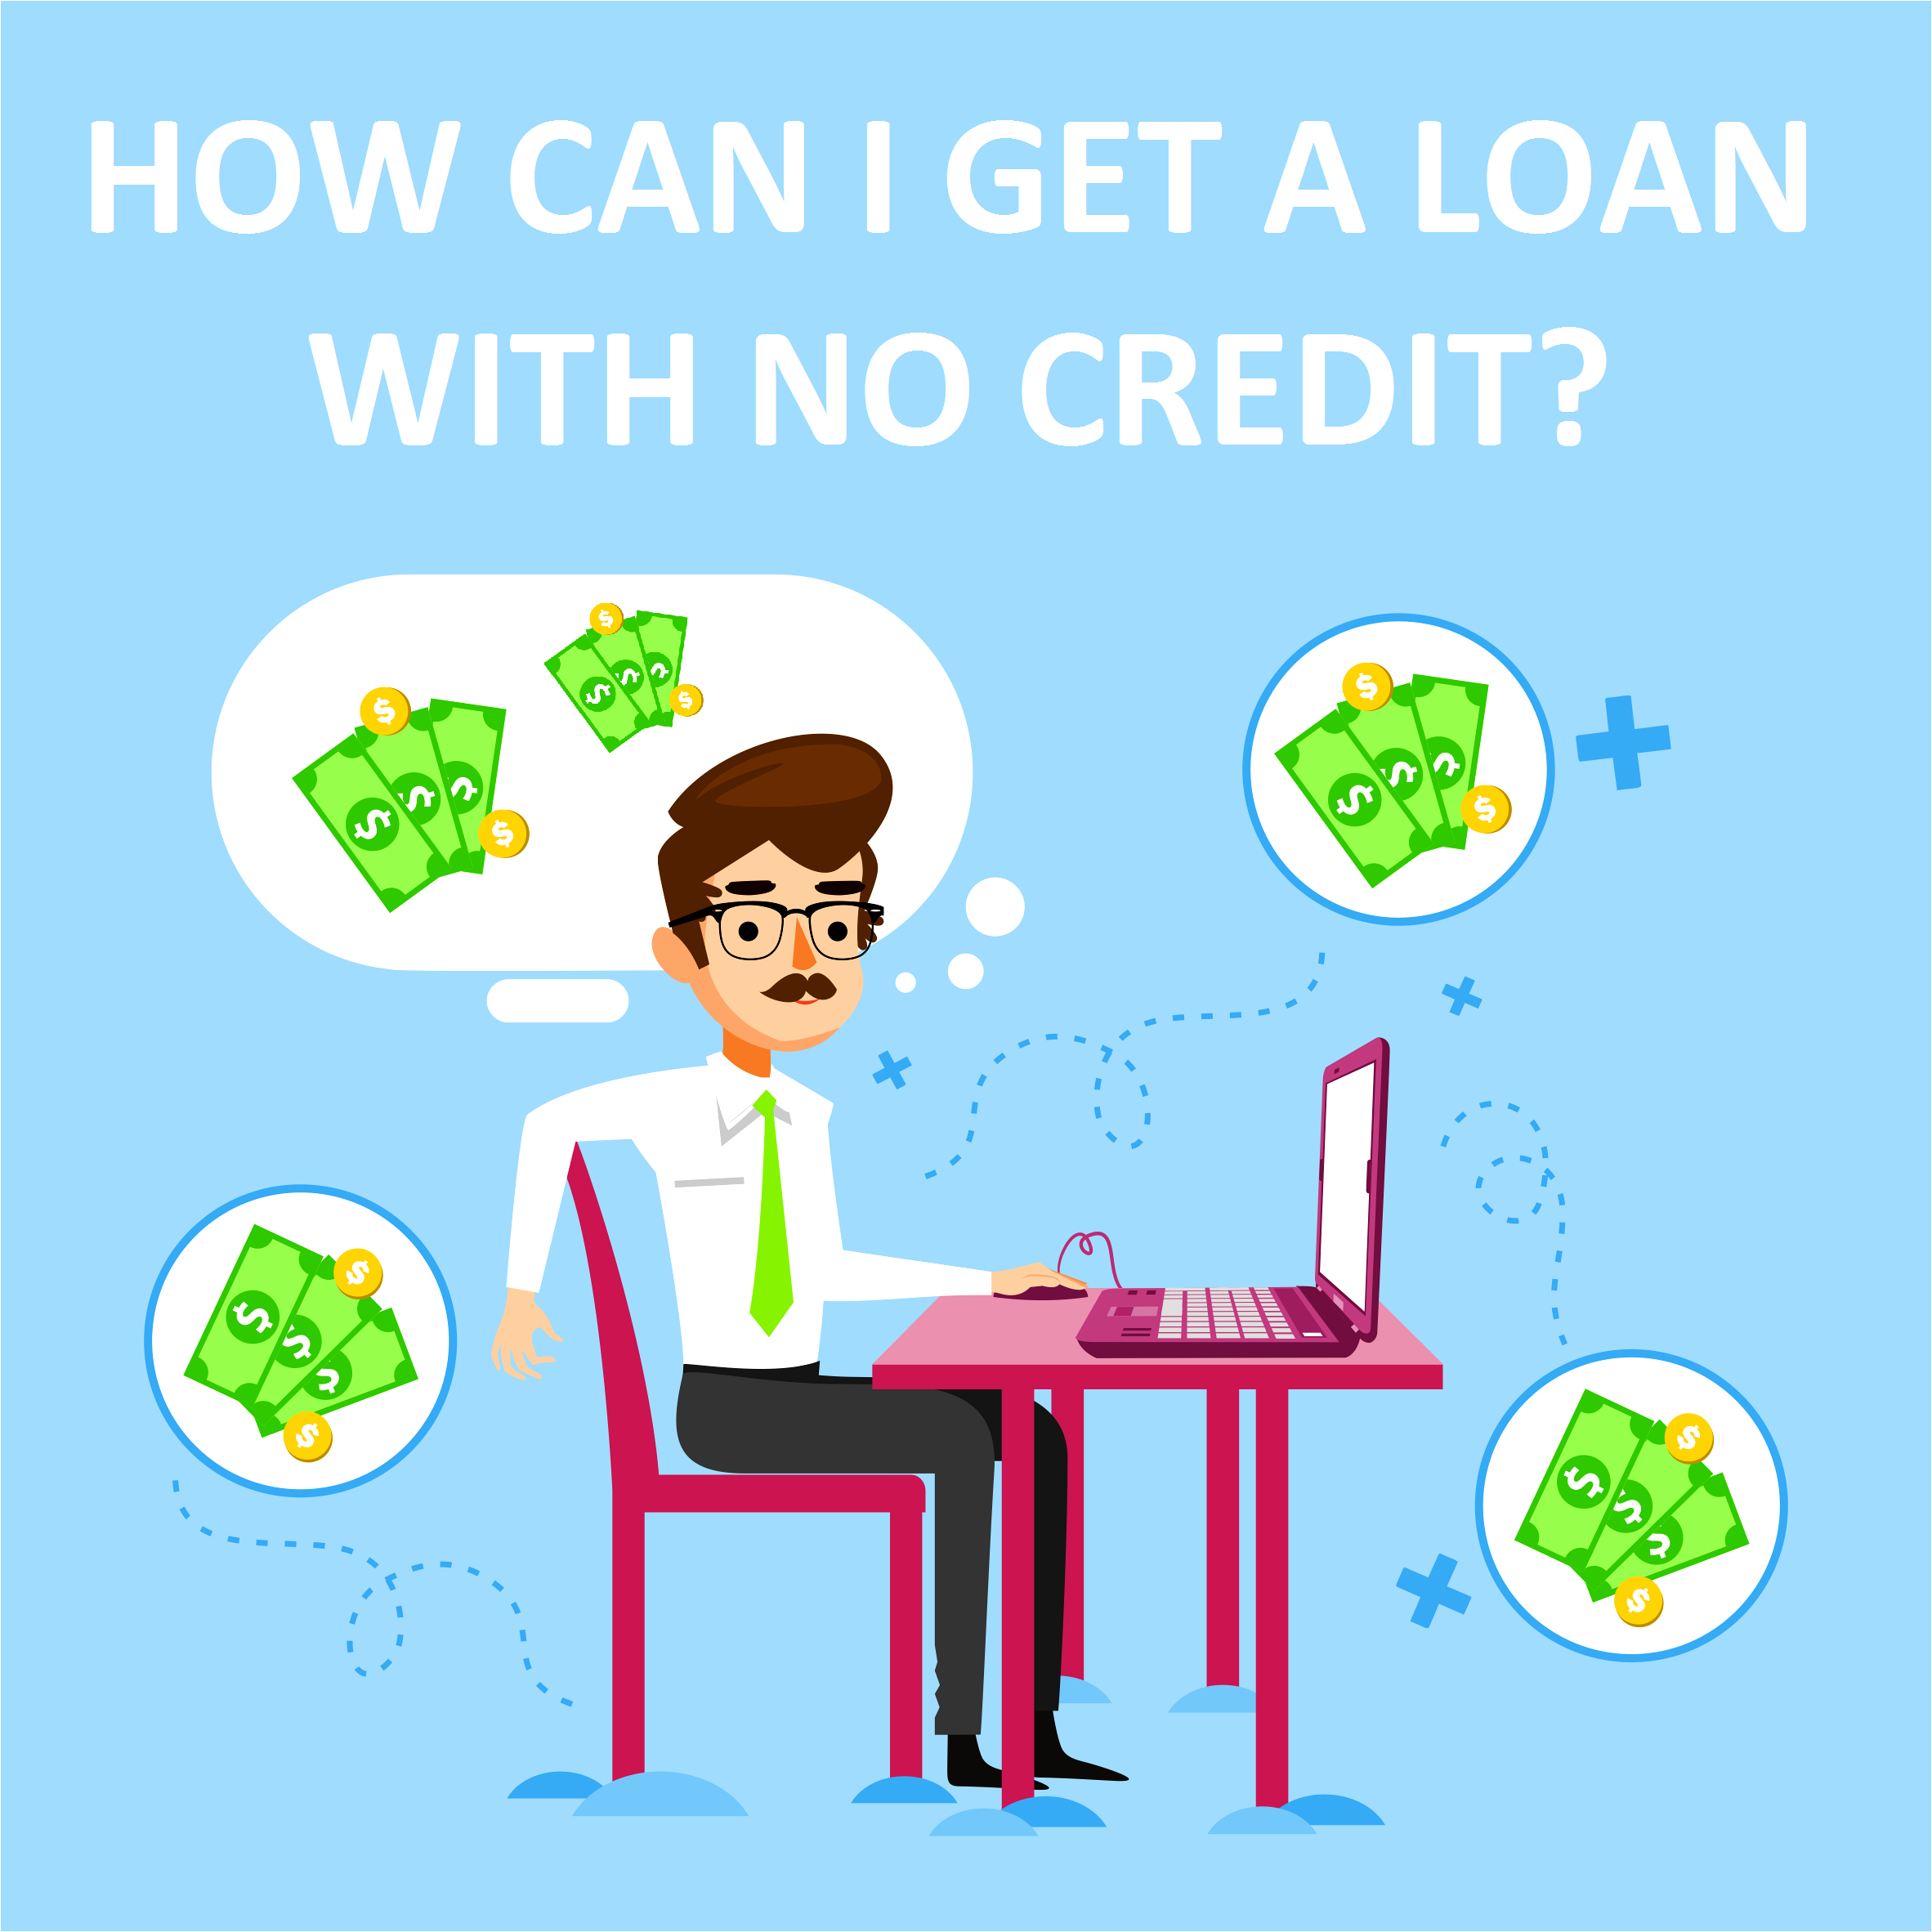 How Can I Get A 5000 Loan With No Credit?